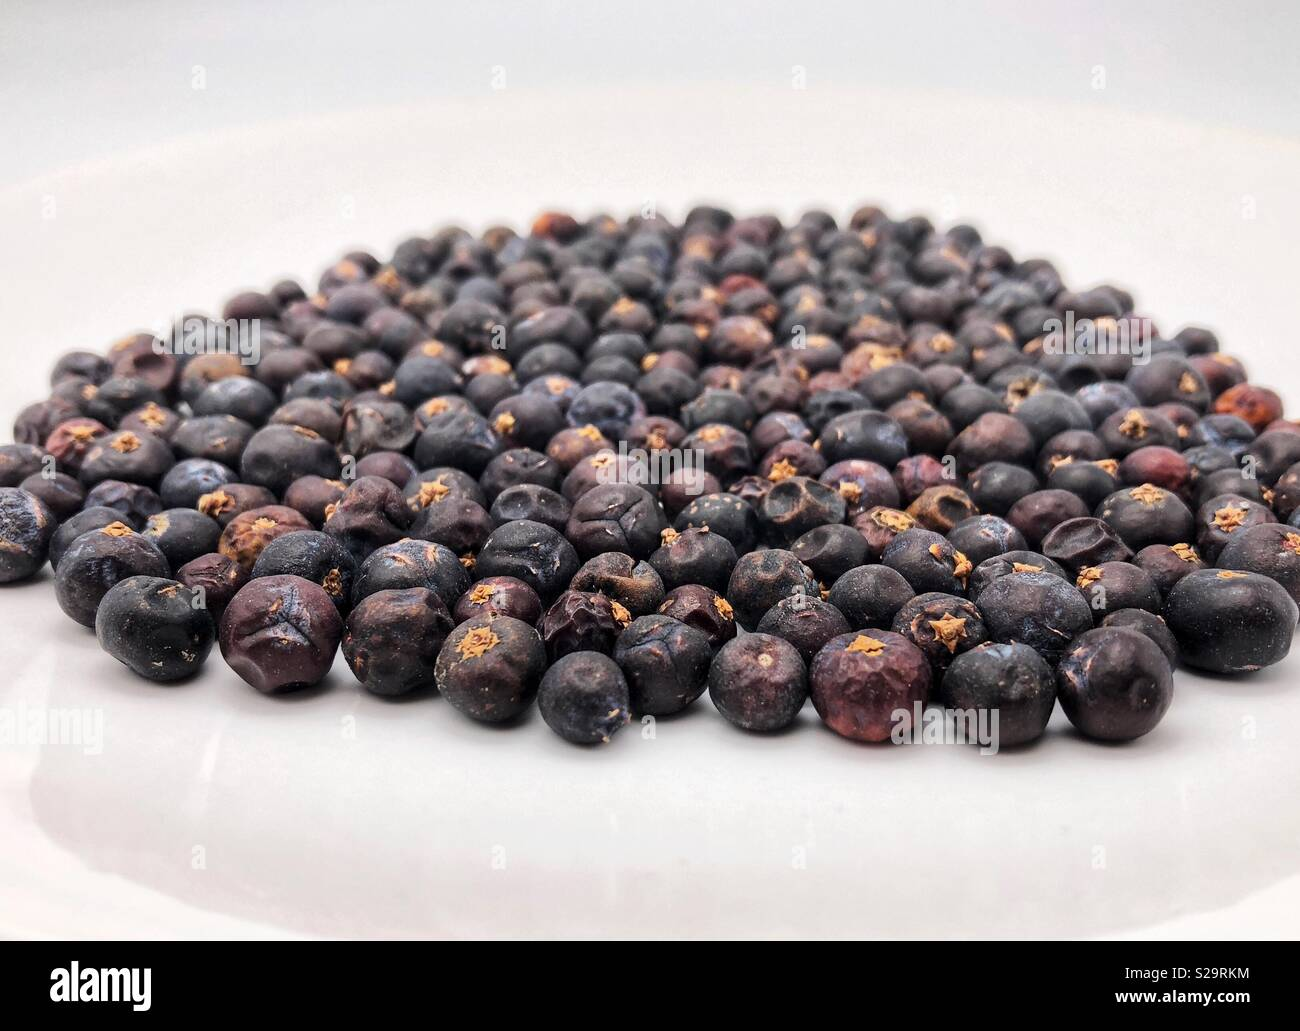 Juniper berries on a white plate - Stock Image